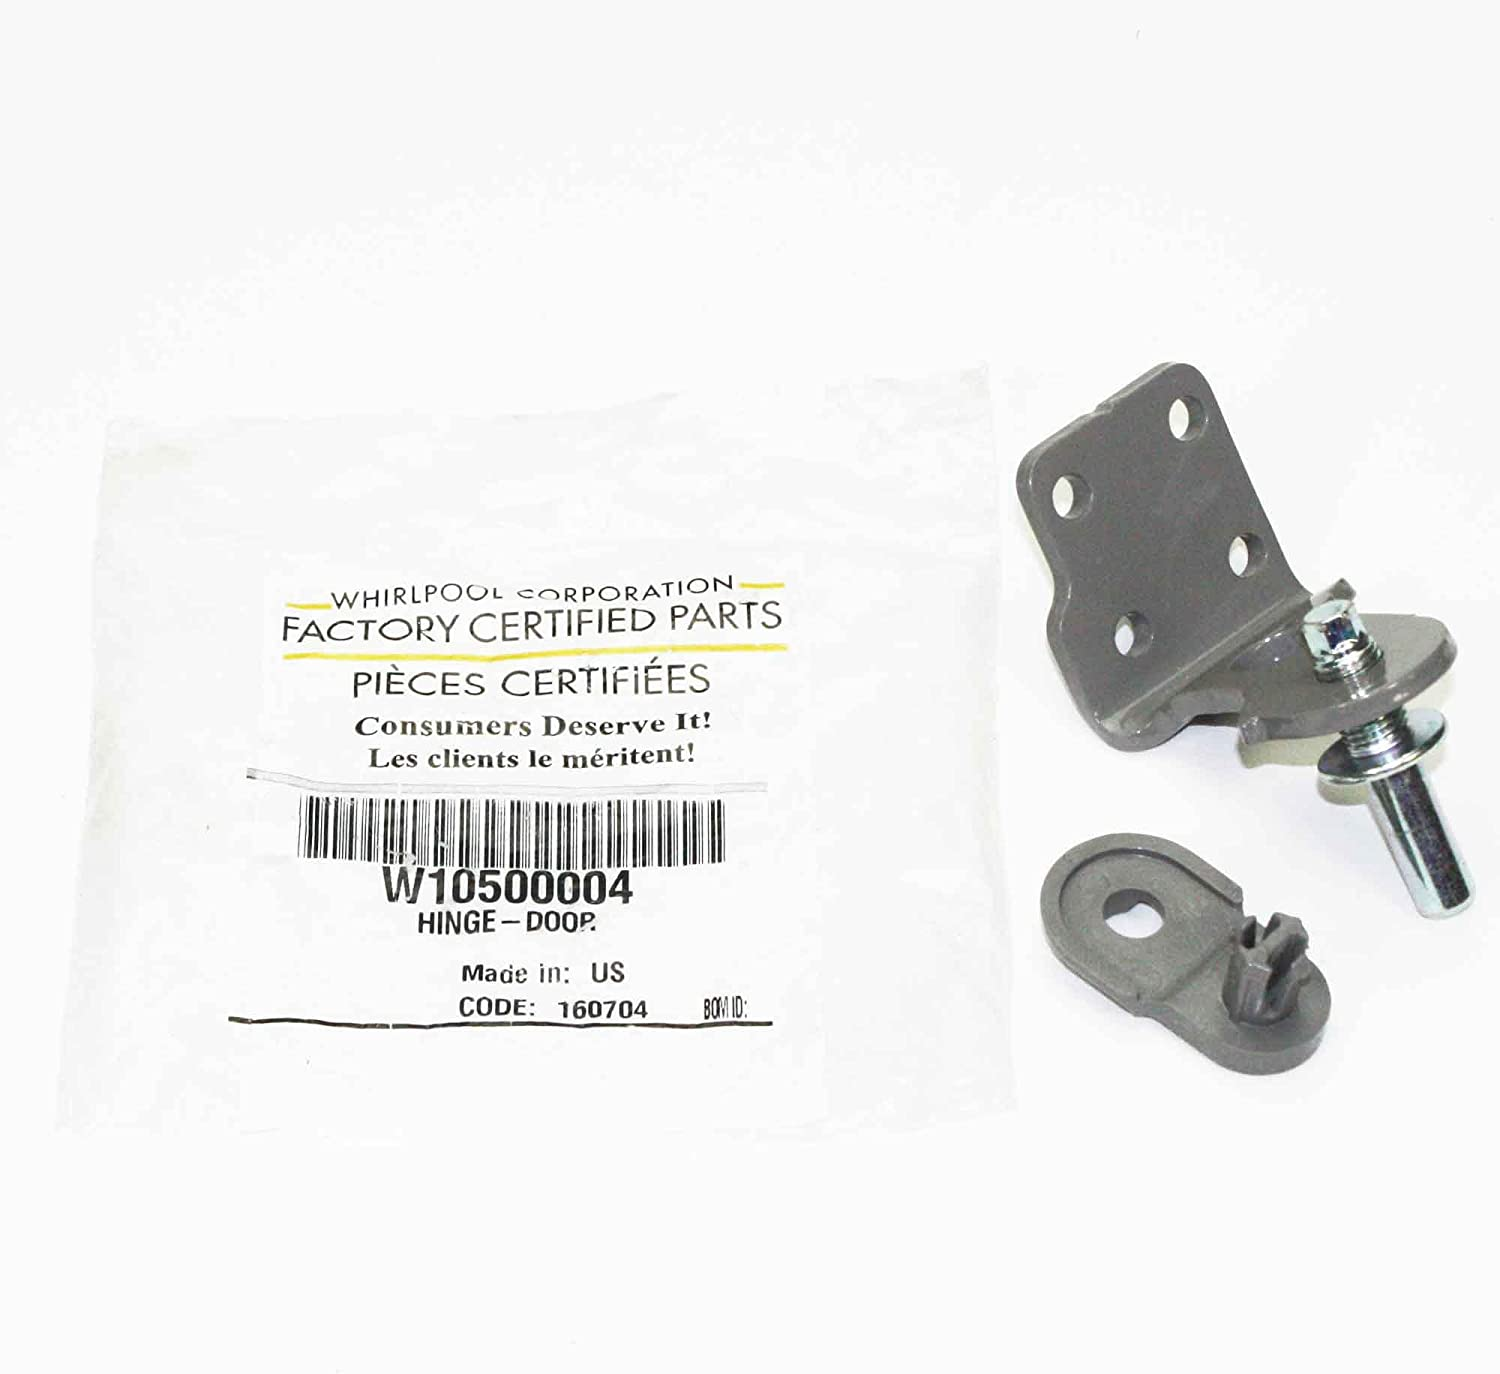 Whirlpool W10500004 Refrigerator Door Hinge Genuine Original Equipment Manufacturer (OEM) Part